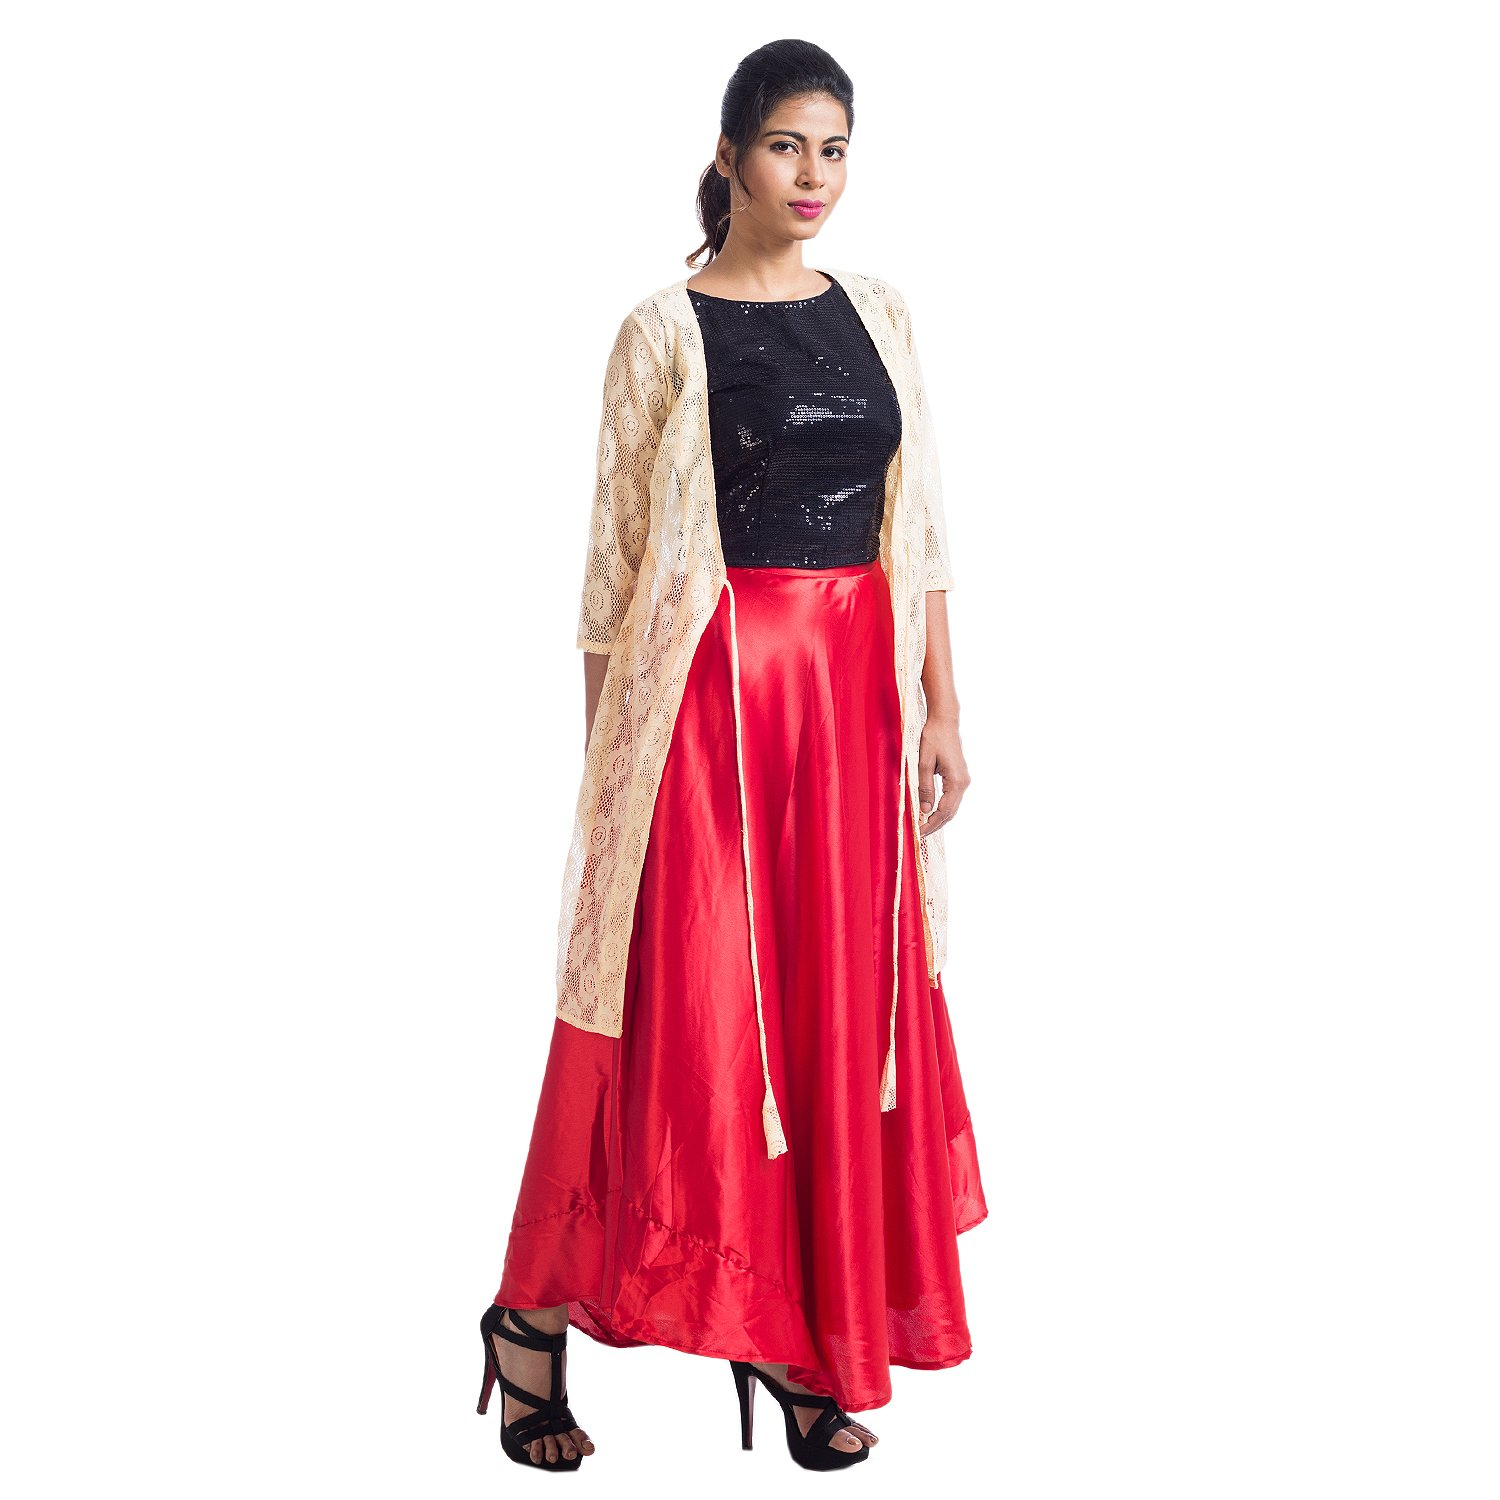 fd1d7807ea Mamosa suits for women readymade Designer Black Sequence Georgette Crop Top  with Red Satin Fashionable Maxi Long Skirts for women with Beige Net Shrug  ...